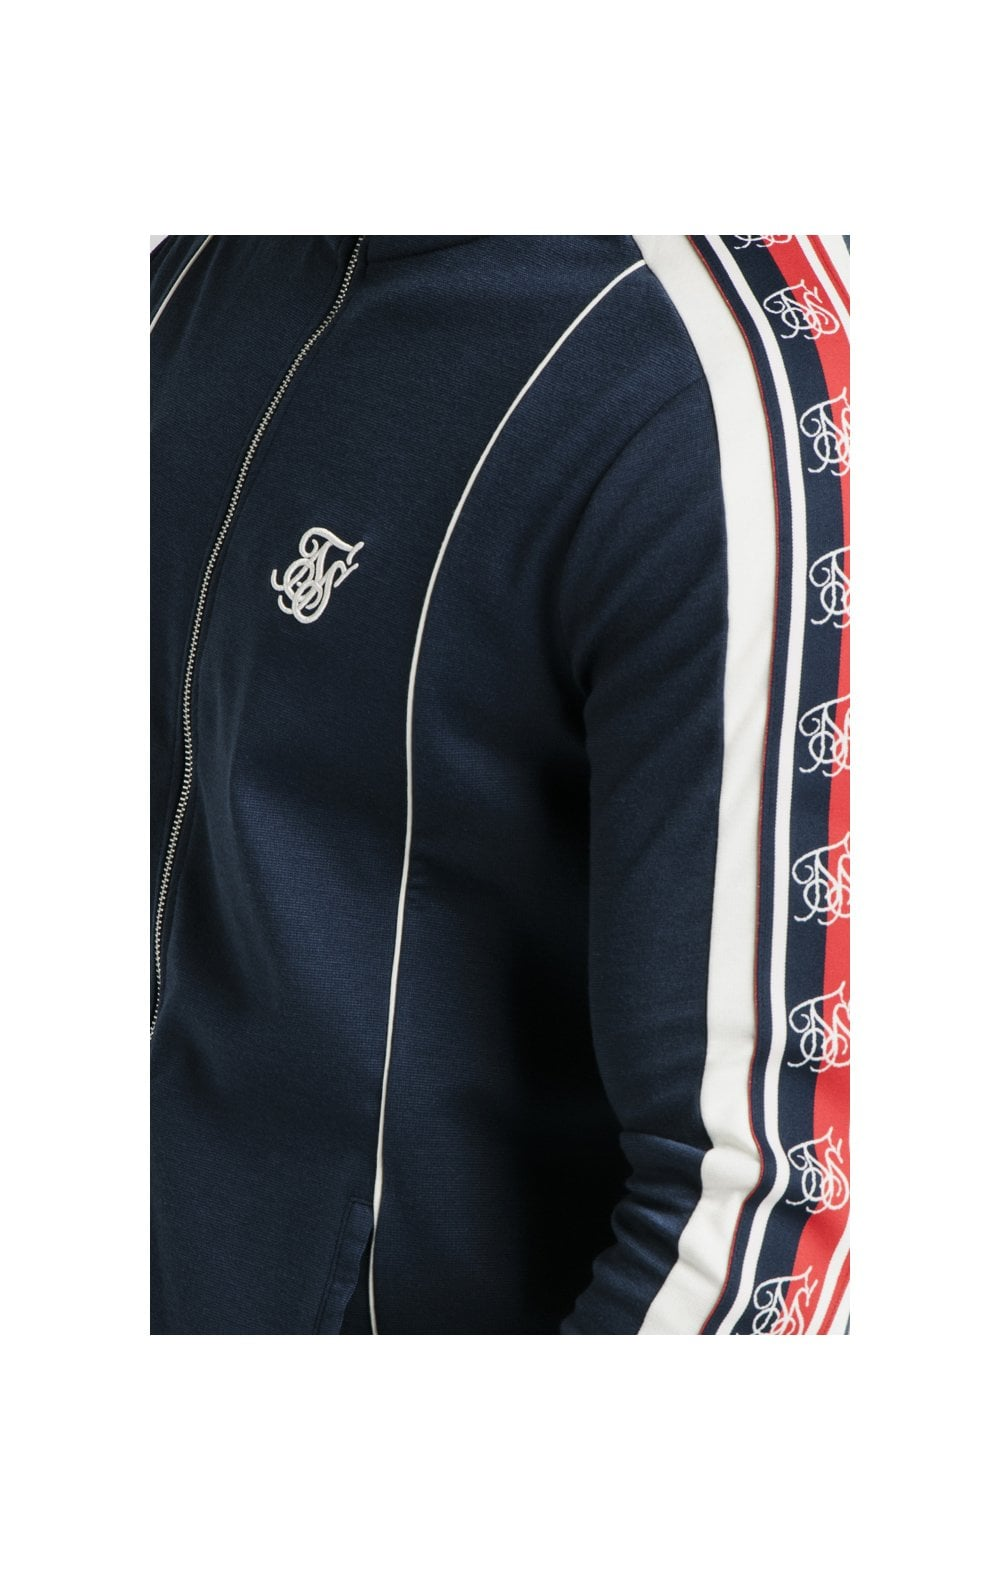 SikSilk Retro Funnel Neck Tape Zip Through Track Top - Navy (1)